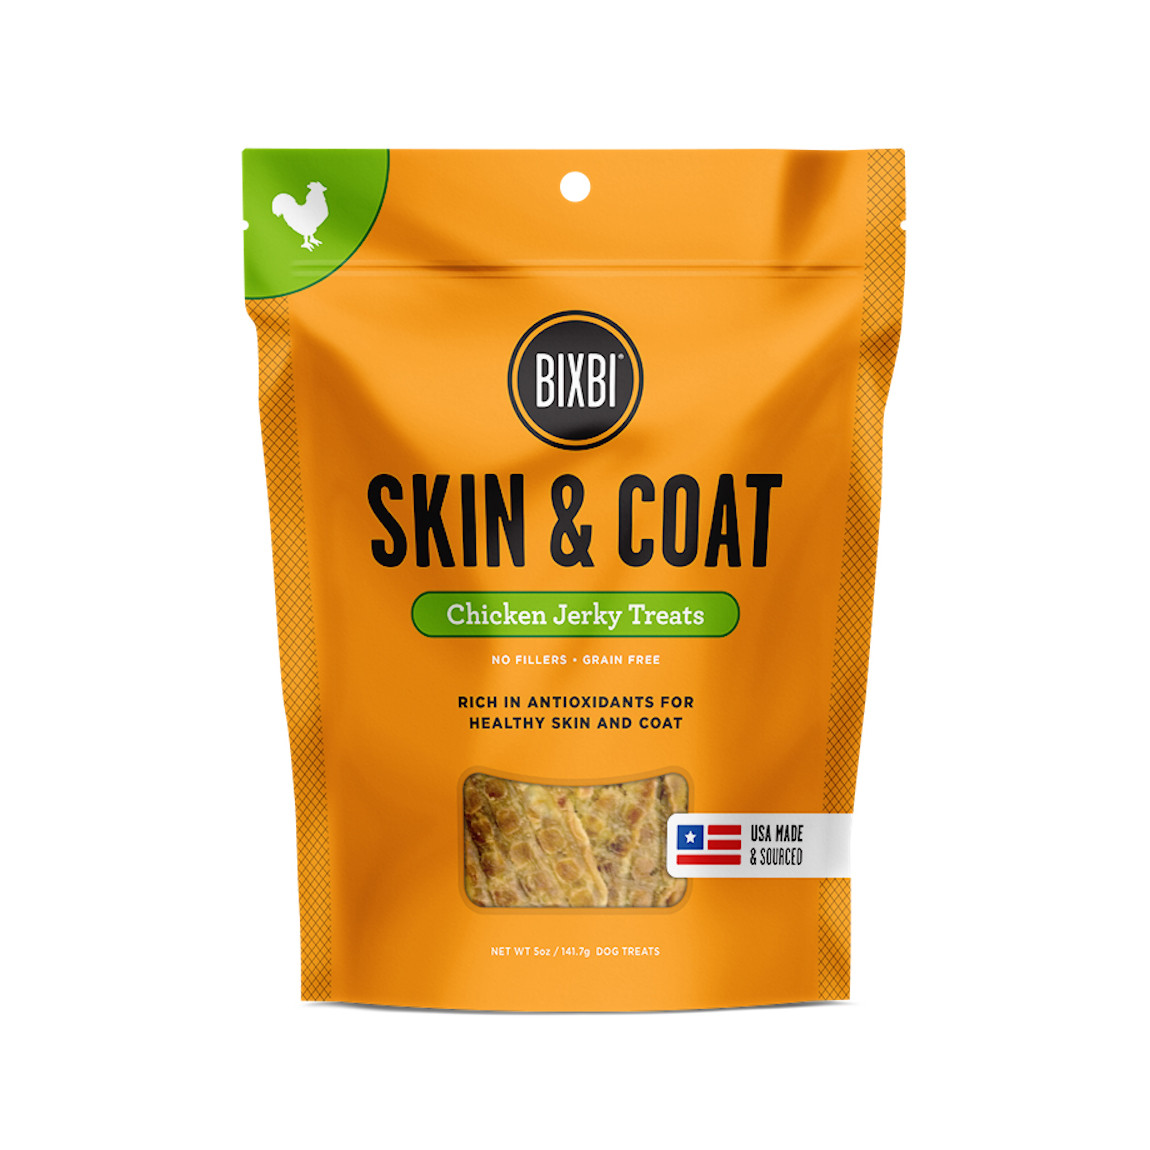 click here to shop Bixbi Skin & Coat Chicken Jerky Dog Treats